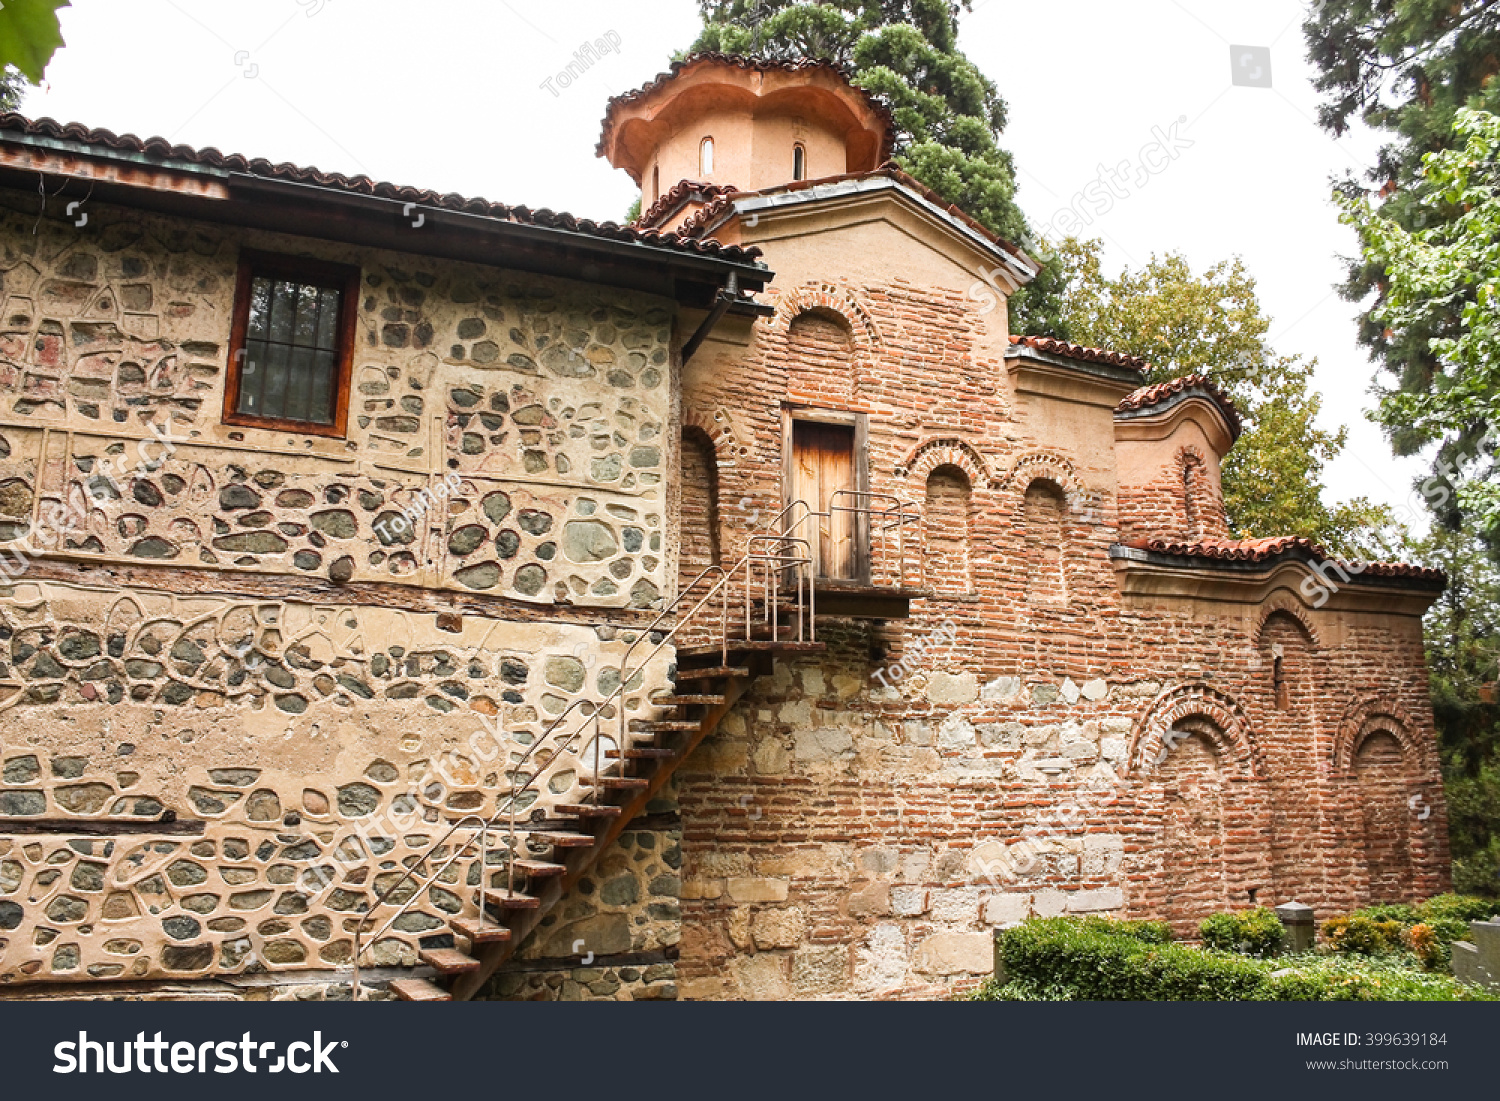 Boyana Church Sofia, Boyana Church Medieval Bulgarian Orthodox Church Stock Photo ...